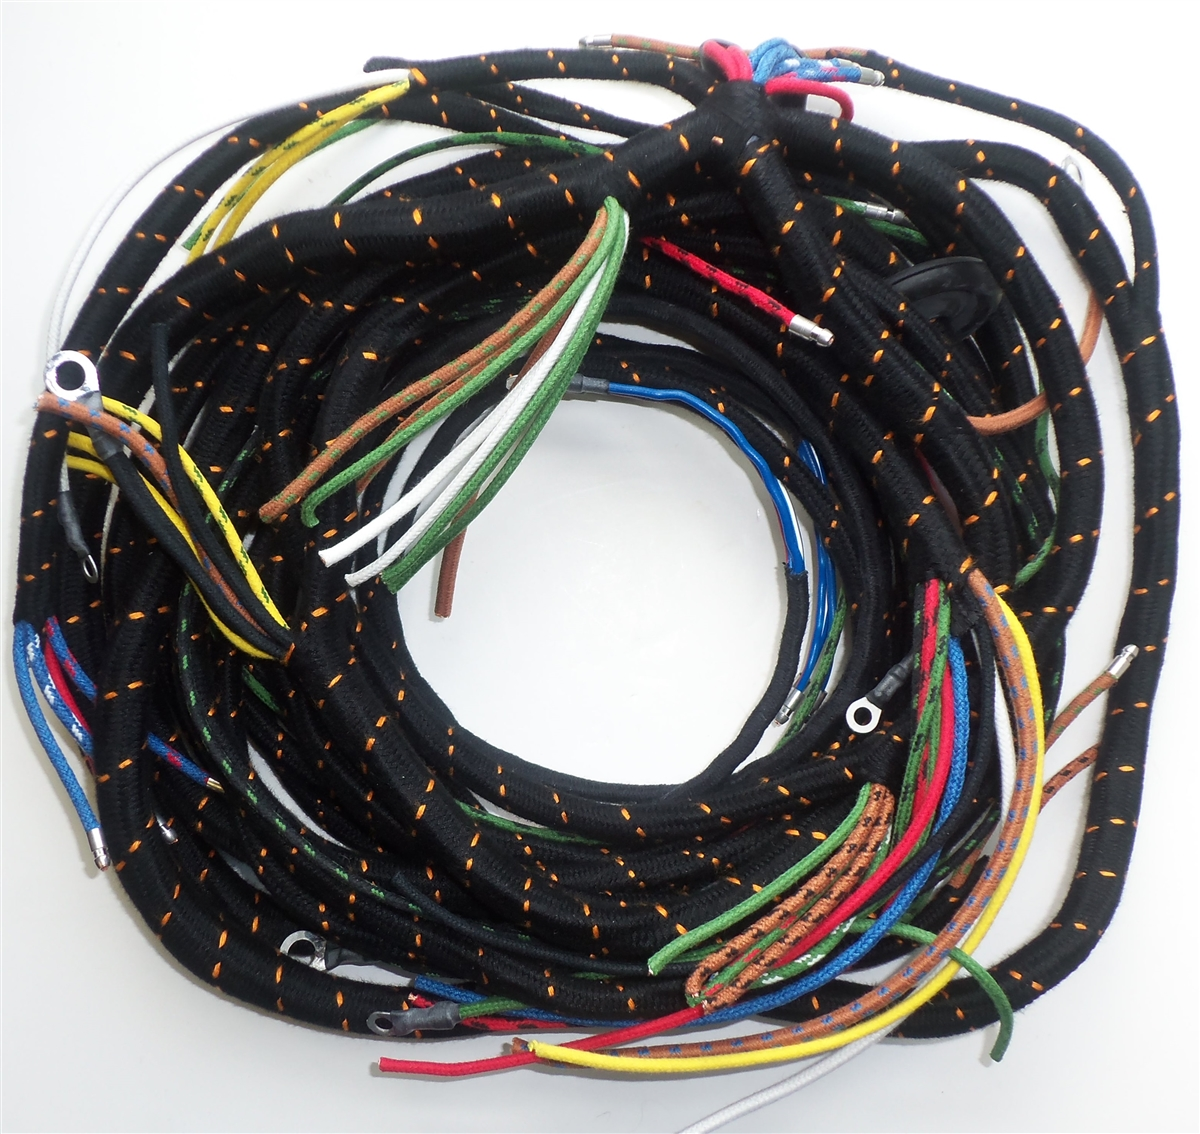 Marvelous Triumph Mayflower Wiring Harness Wiring Cloud Hisonuggs Outletorg